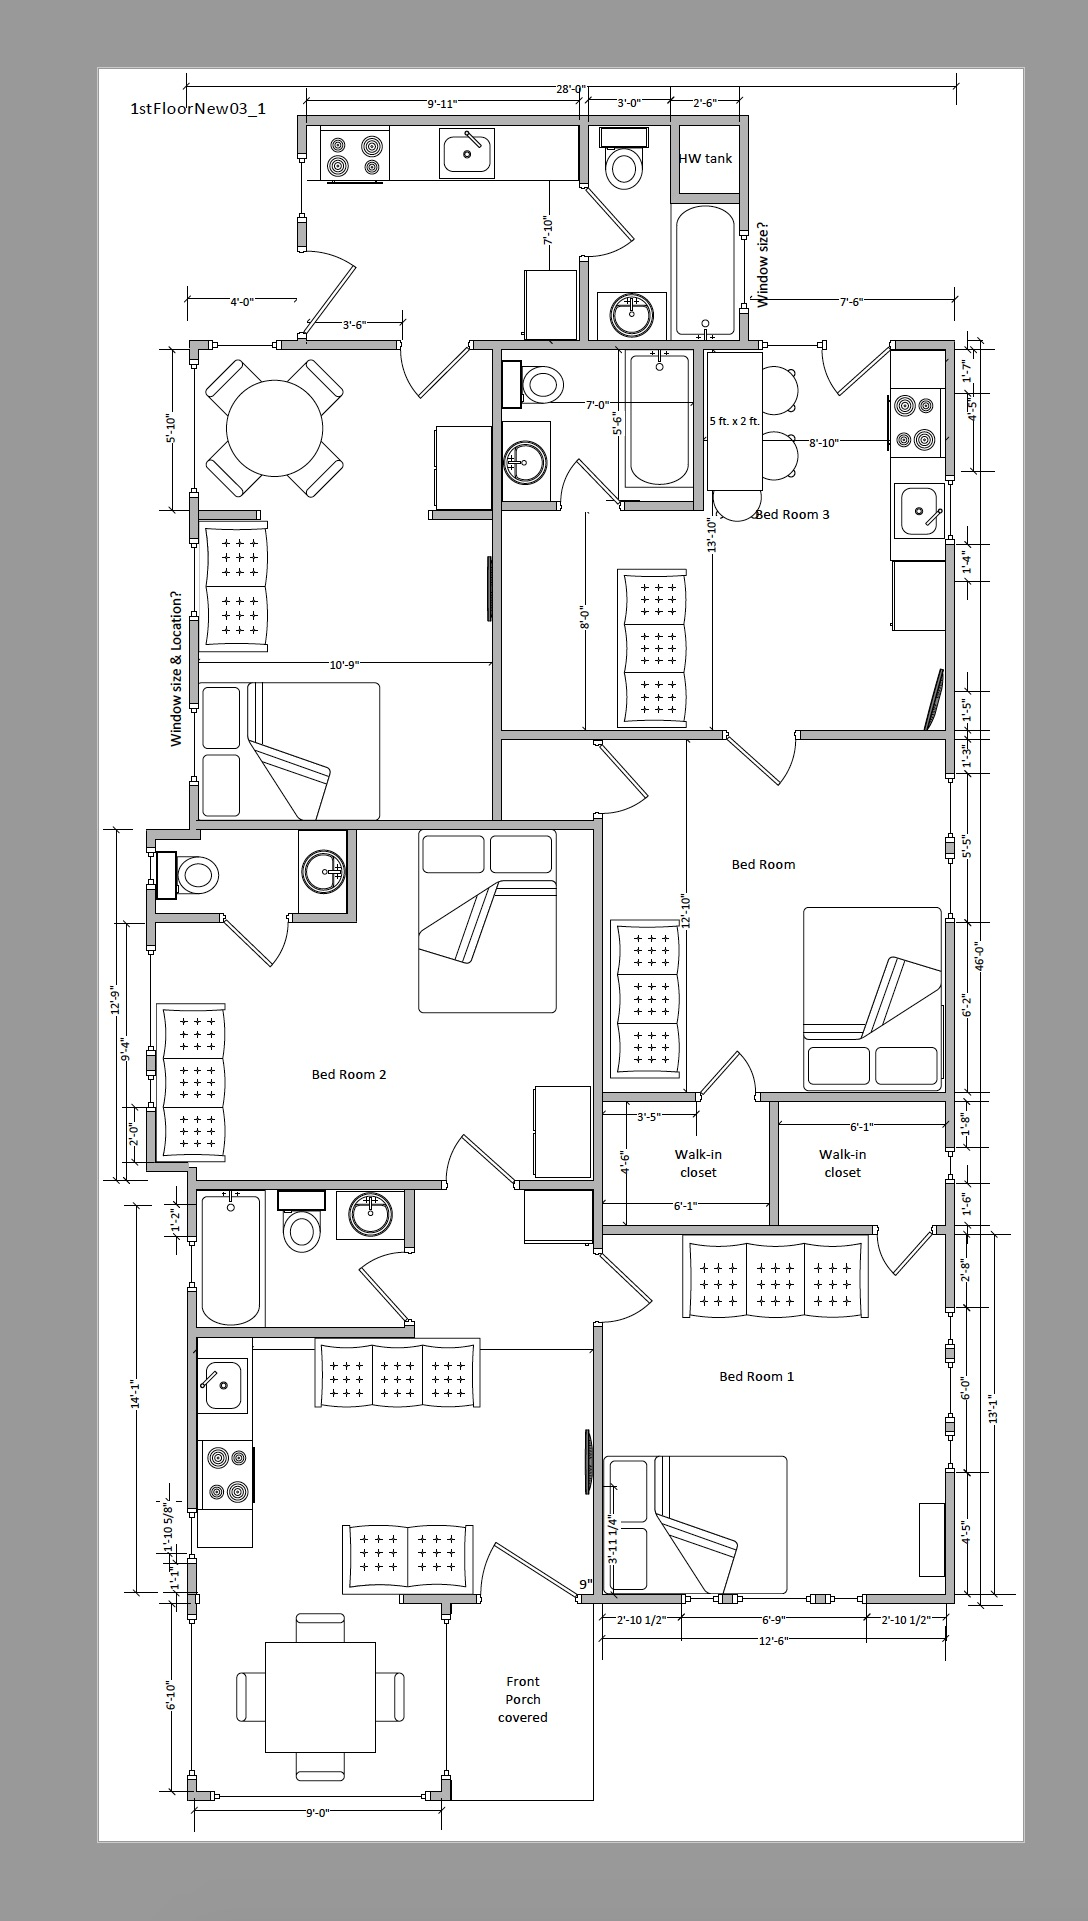 This is the design to convert to 3 units. If this doesn't pass approval, we will go to 2 units.